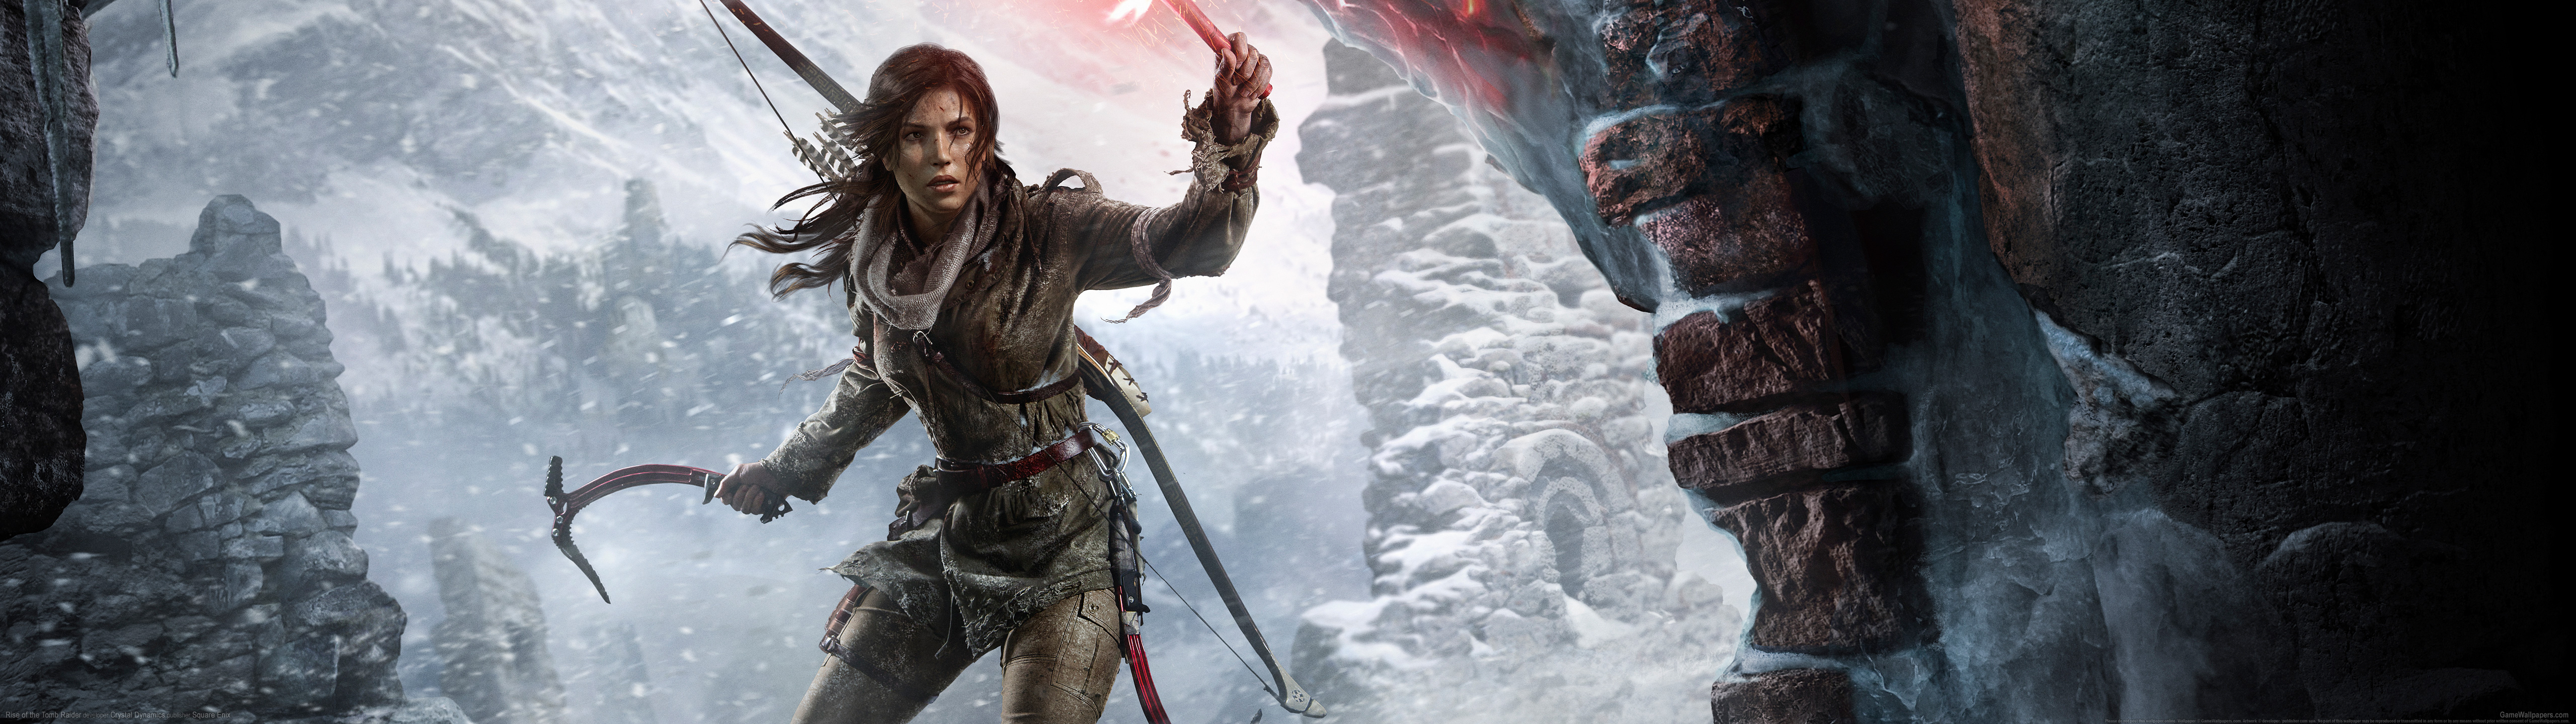 Rise of the Tomb Raider wallpaper 11 5120x1440